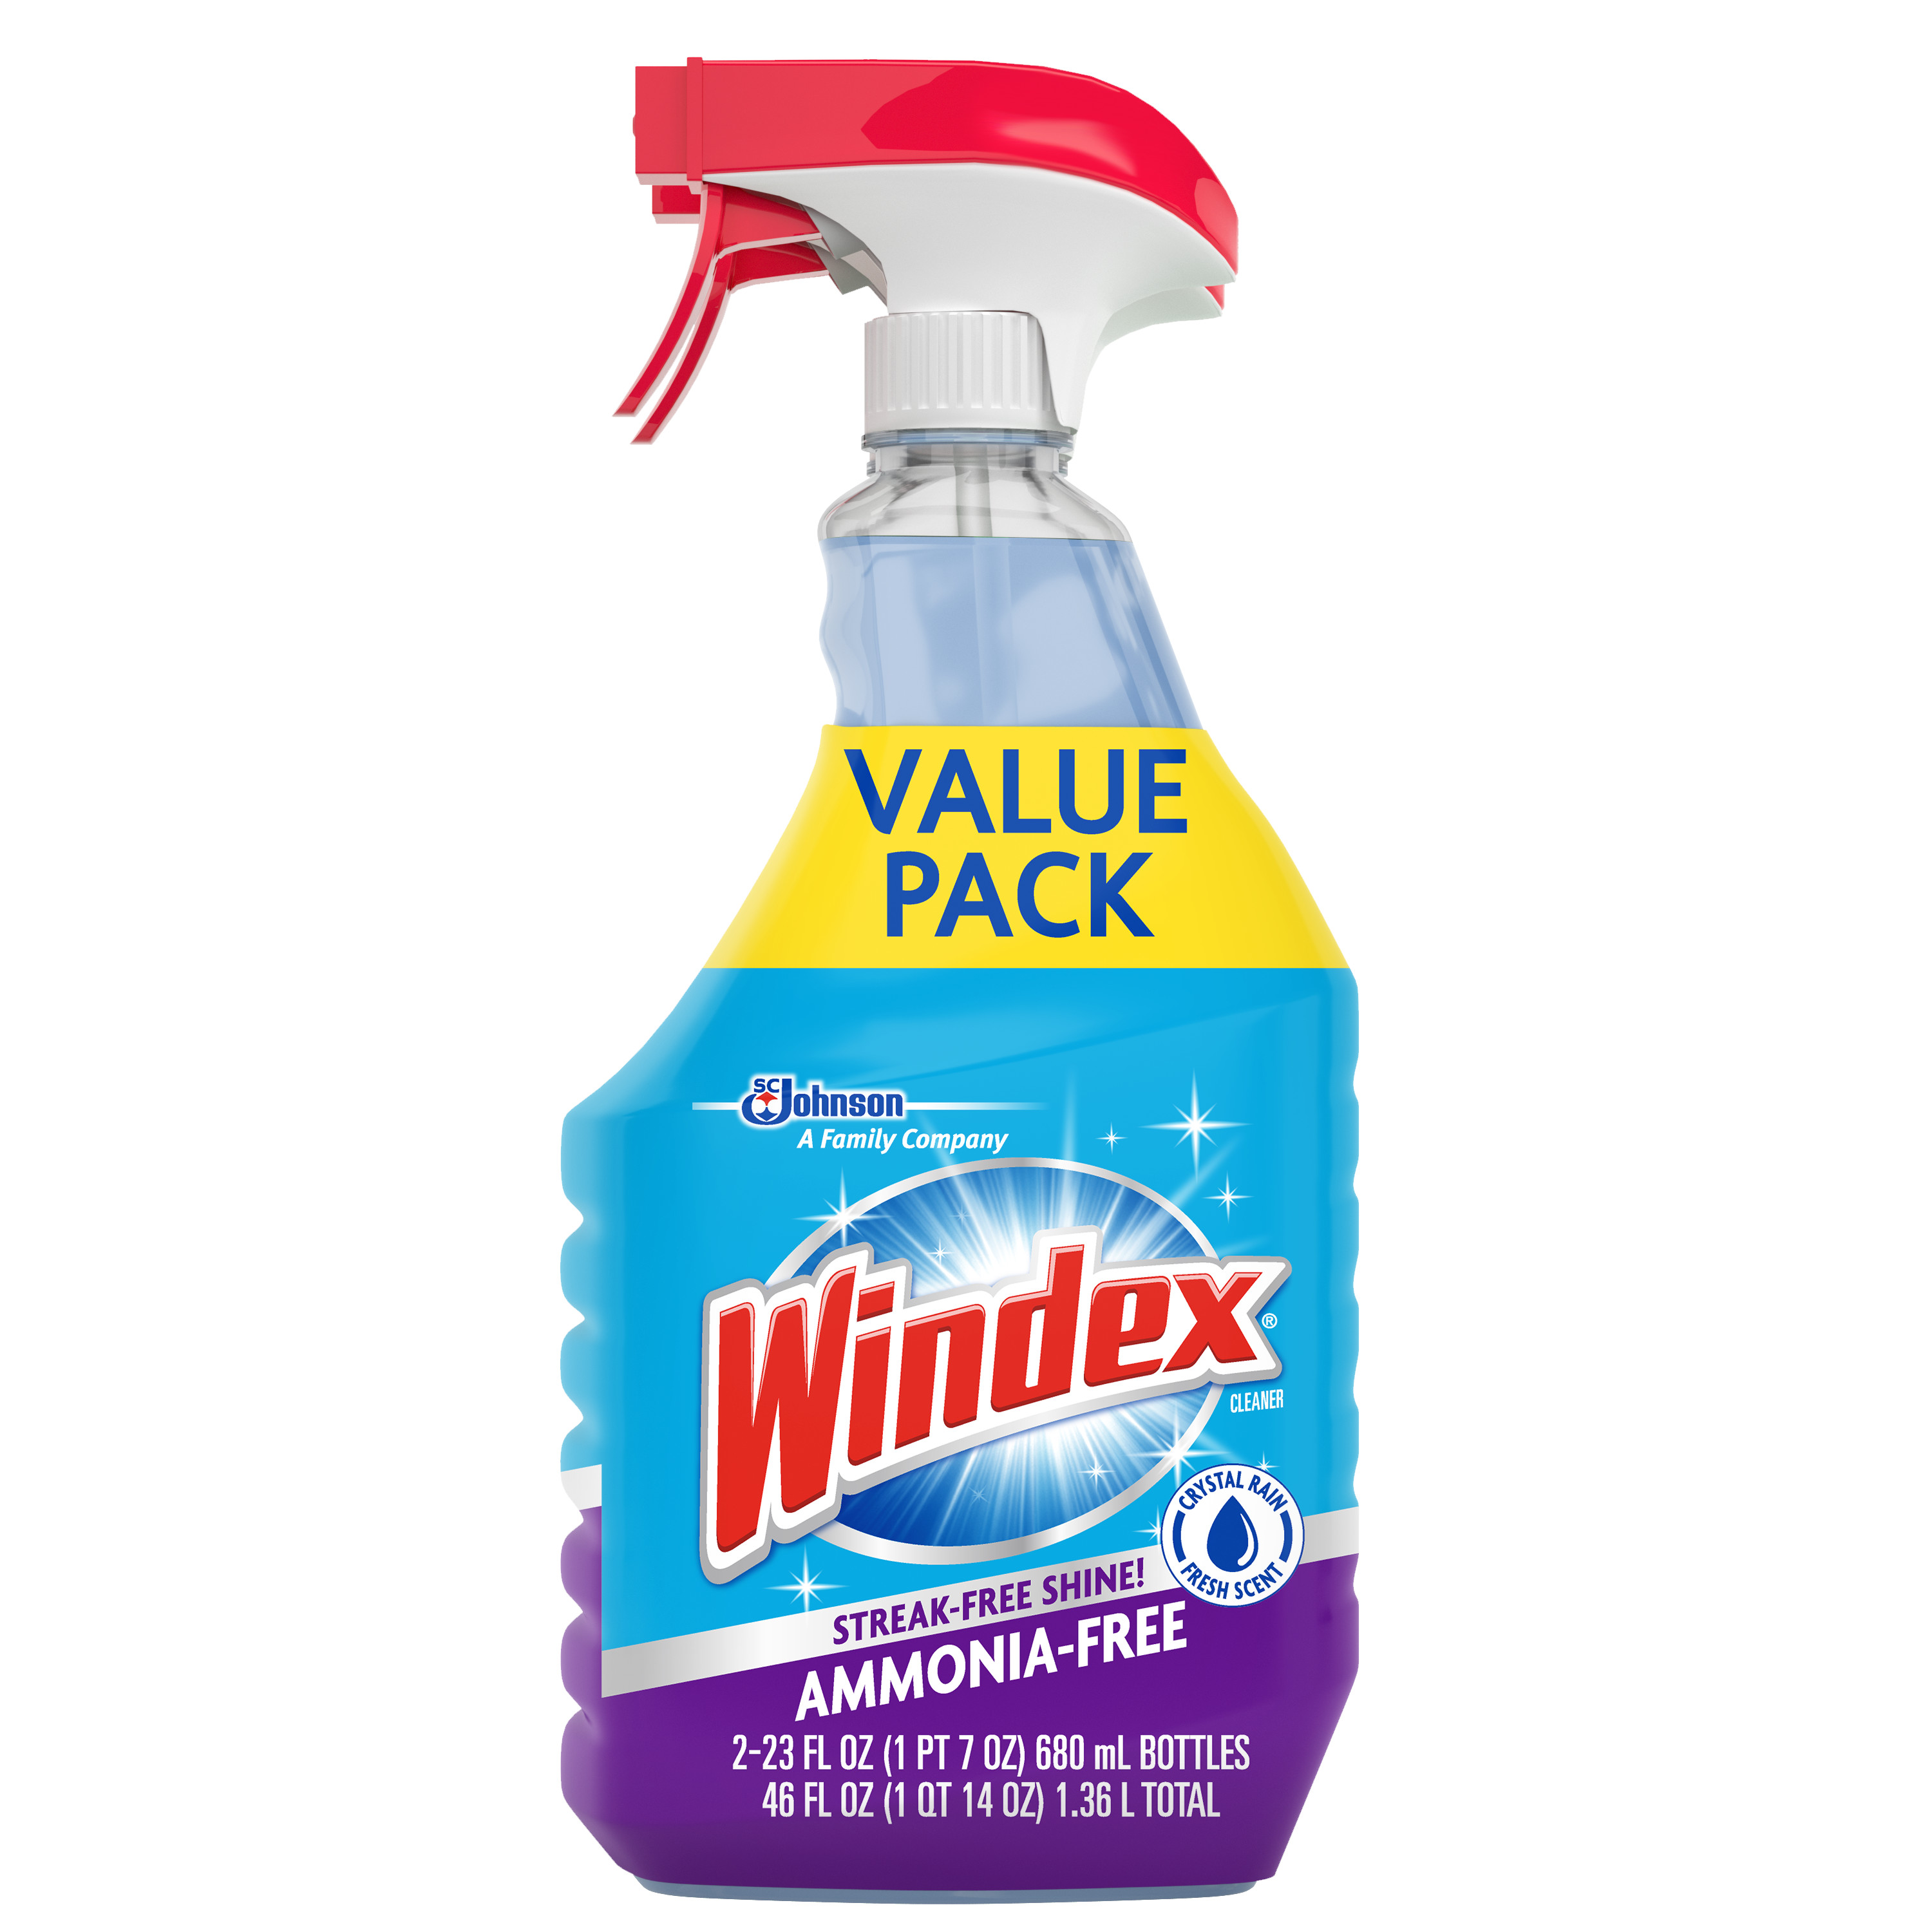 Windex Ammonia-Free Glass Cleaner Trigger Bottle, Crystal Rain, 23 fl oz (2 ct)